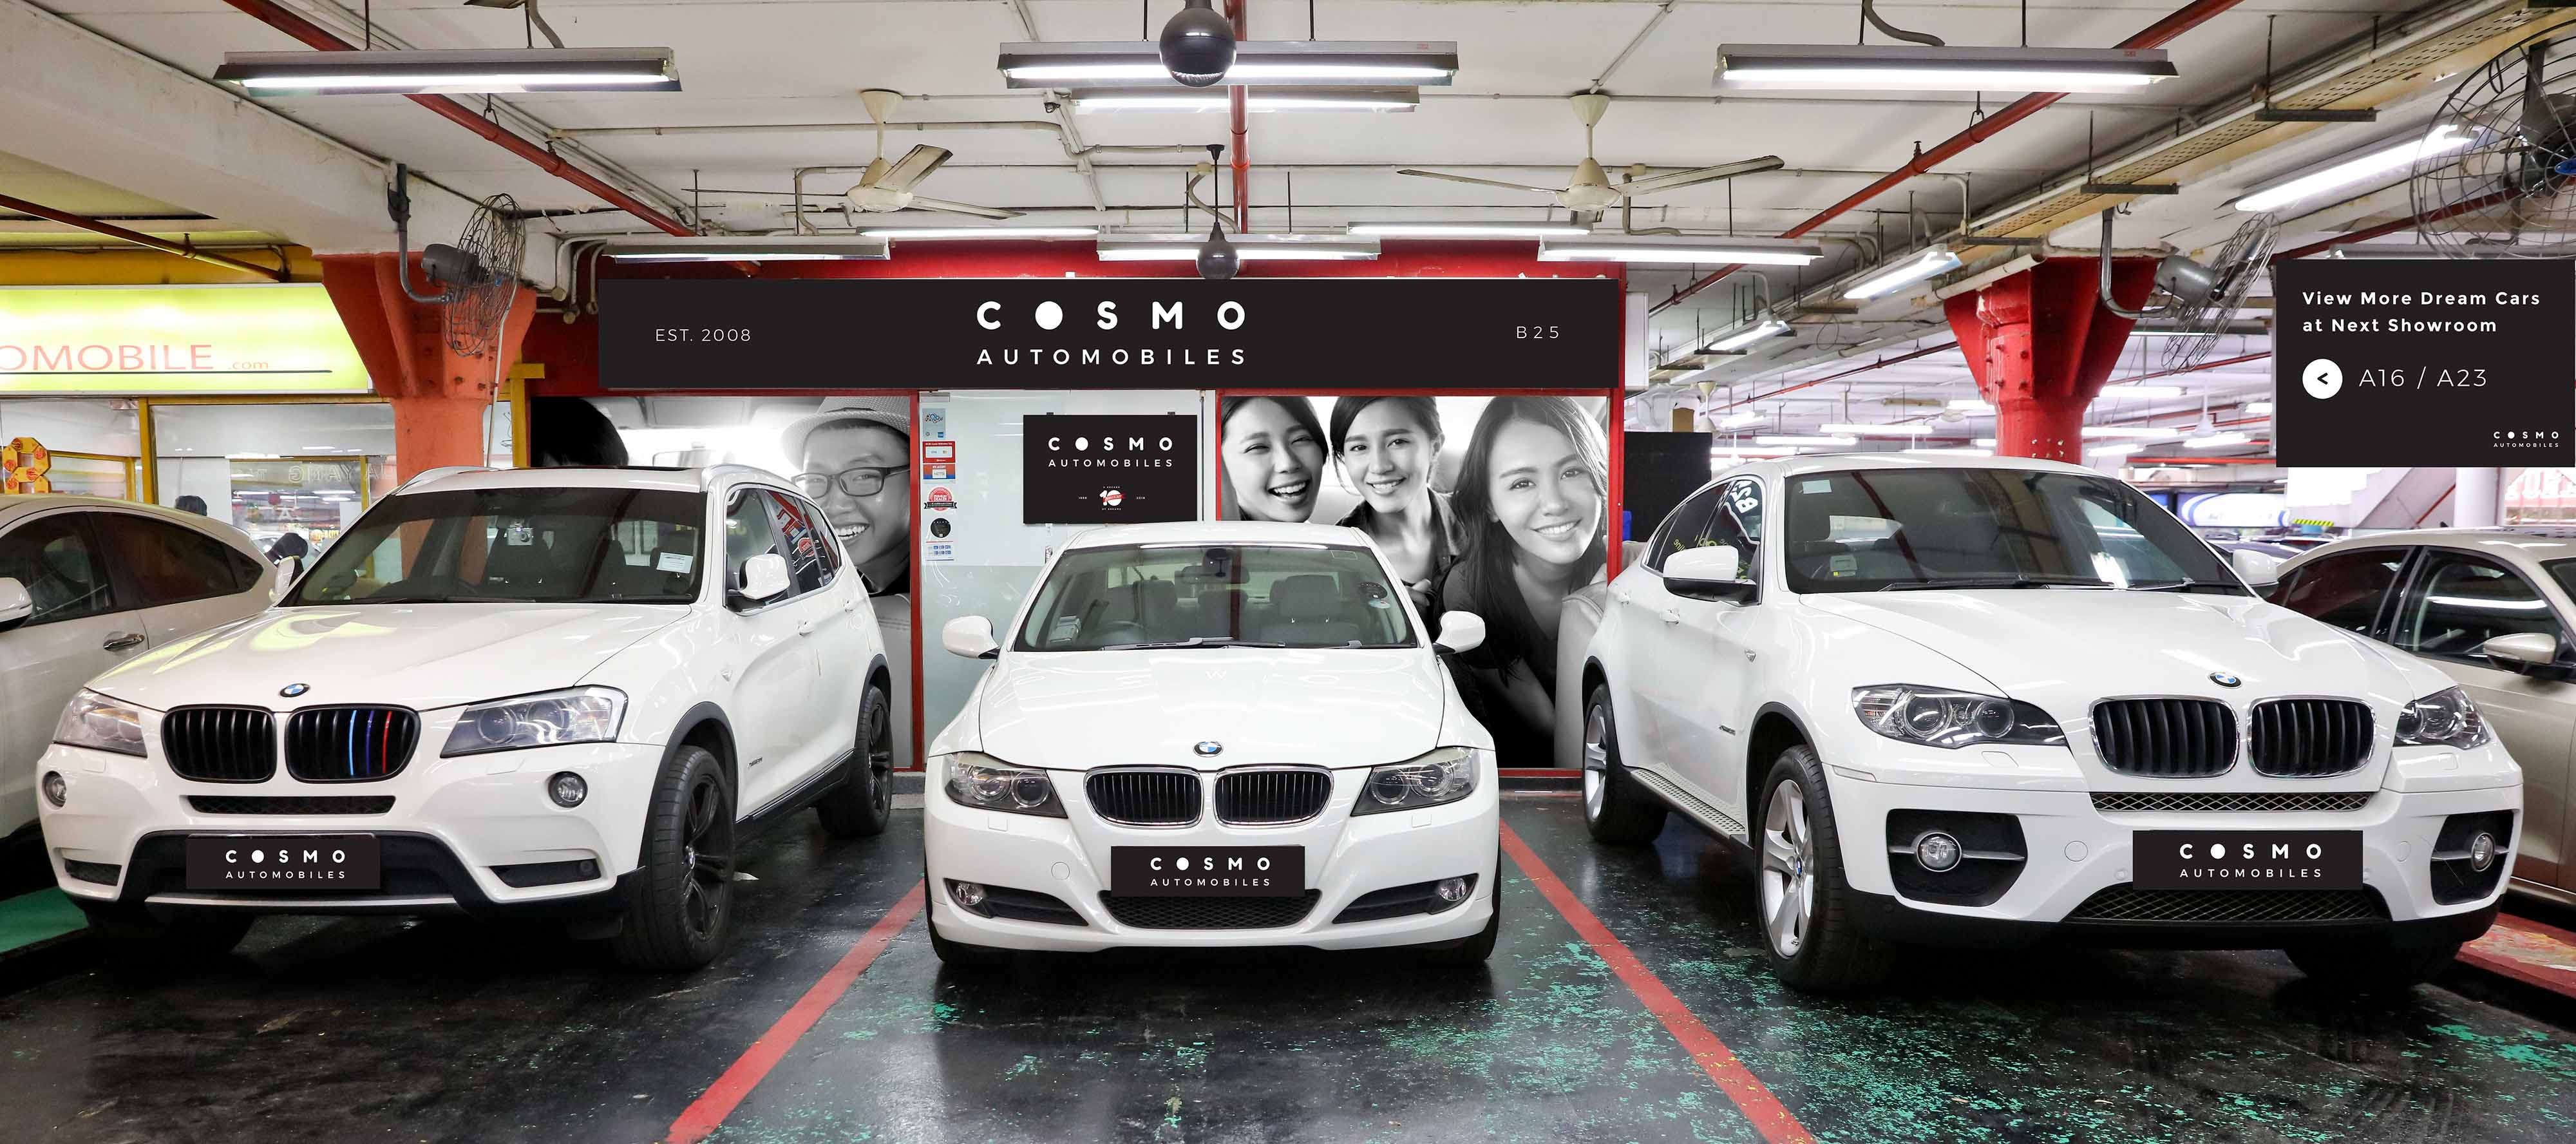 The Cosmo Automobiles Story